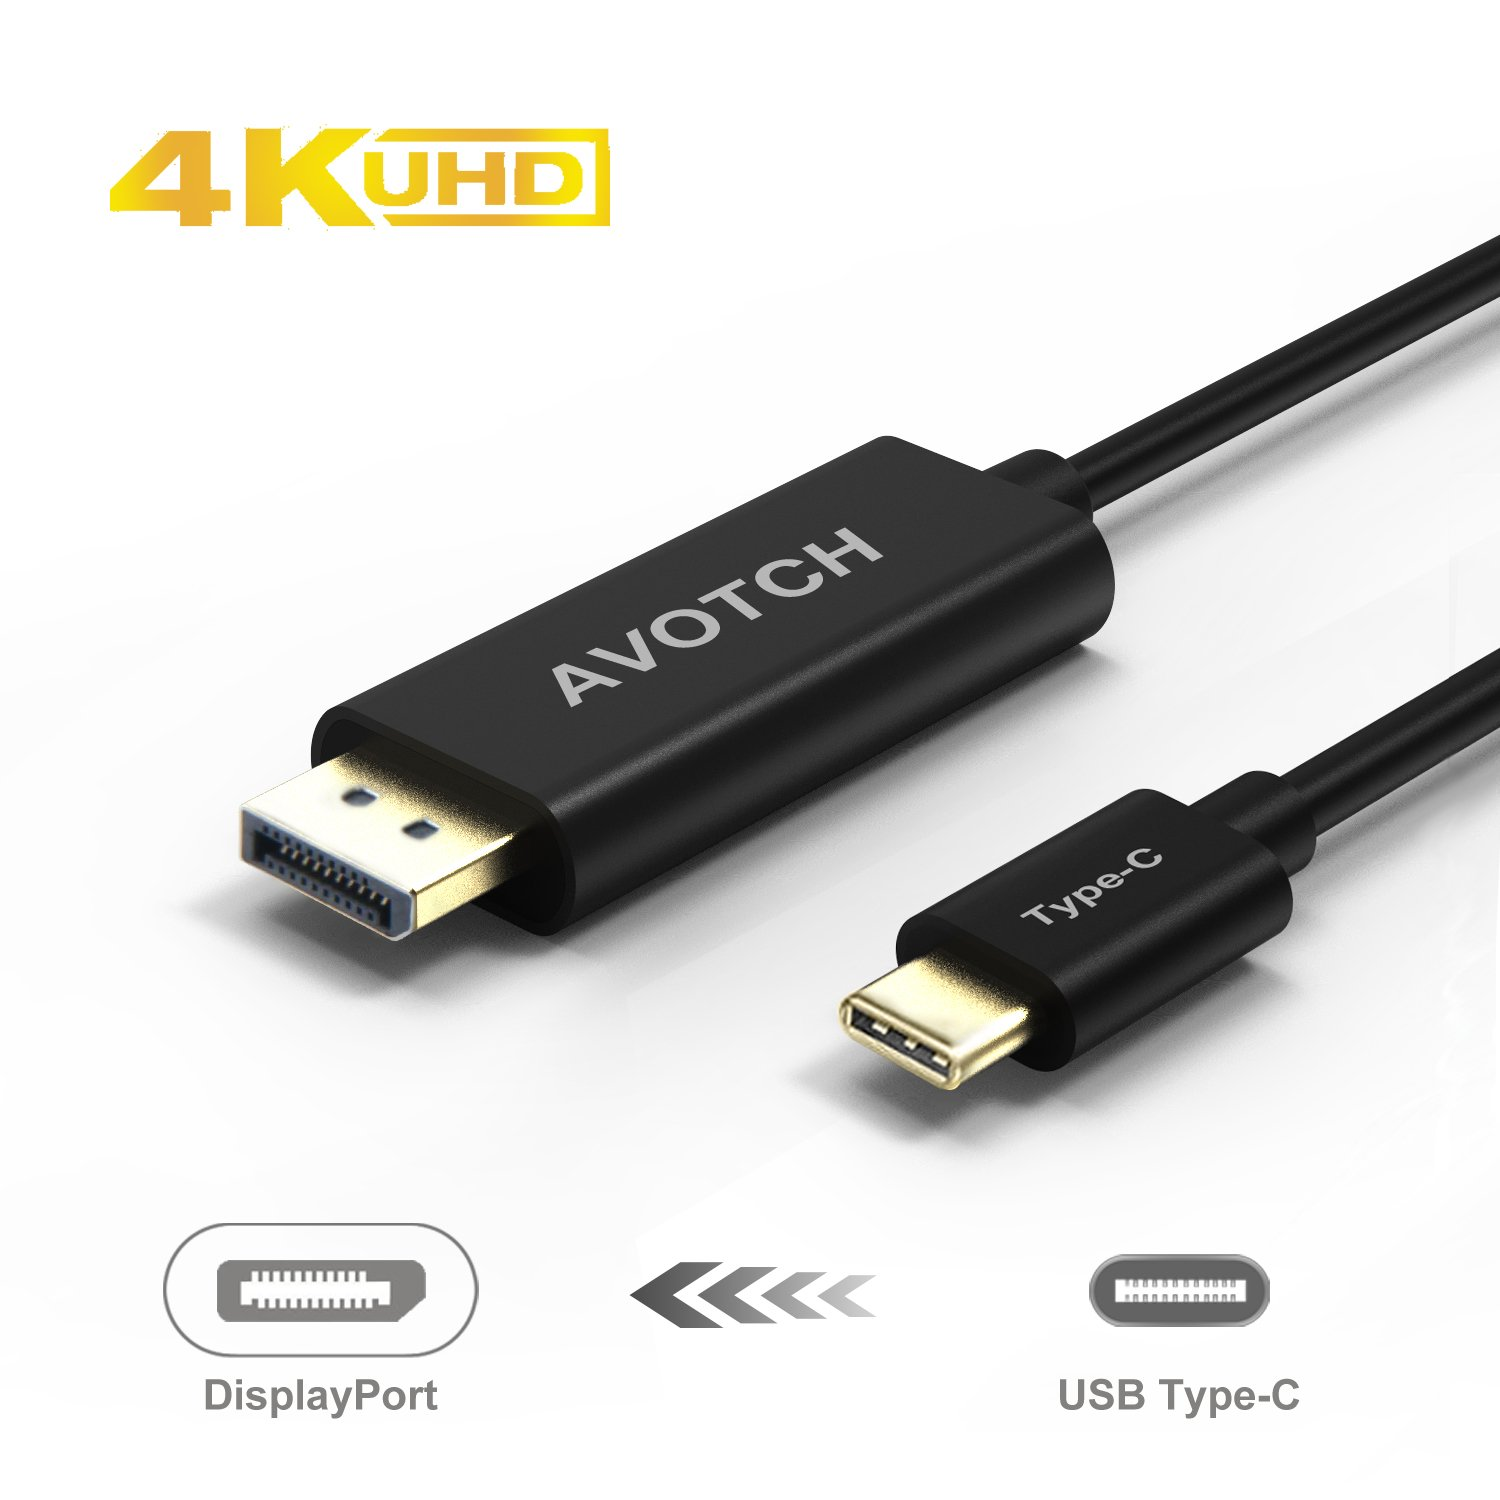 USB C to DisplayPort Cable , AVOTCH USB 3.1 Type C (Thunderbolt 3 Compatible) to DP Cable 6FT 4K 60HZ with Aluminium Case for 2016 MacBook Pro